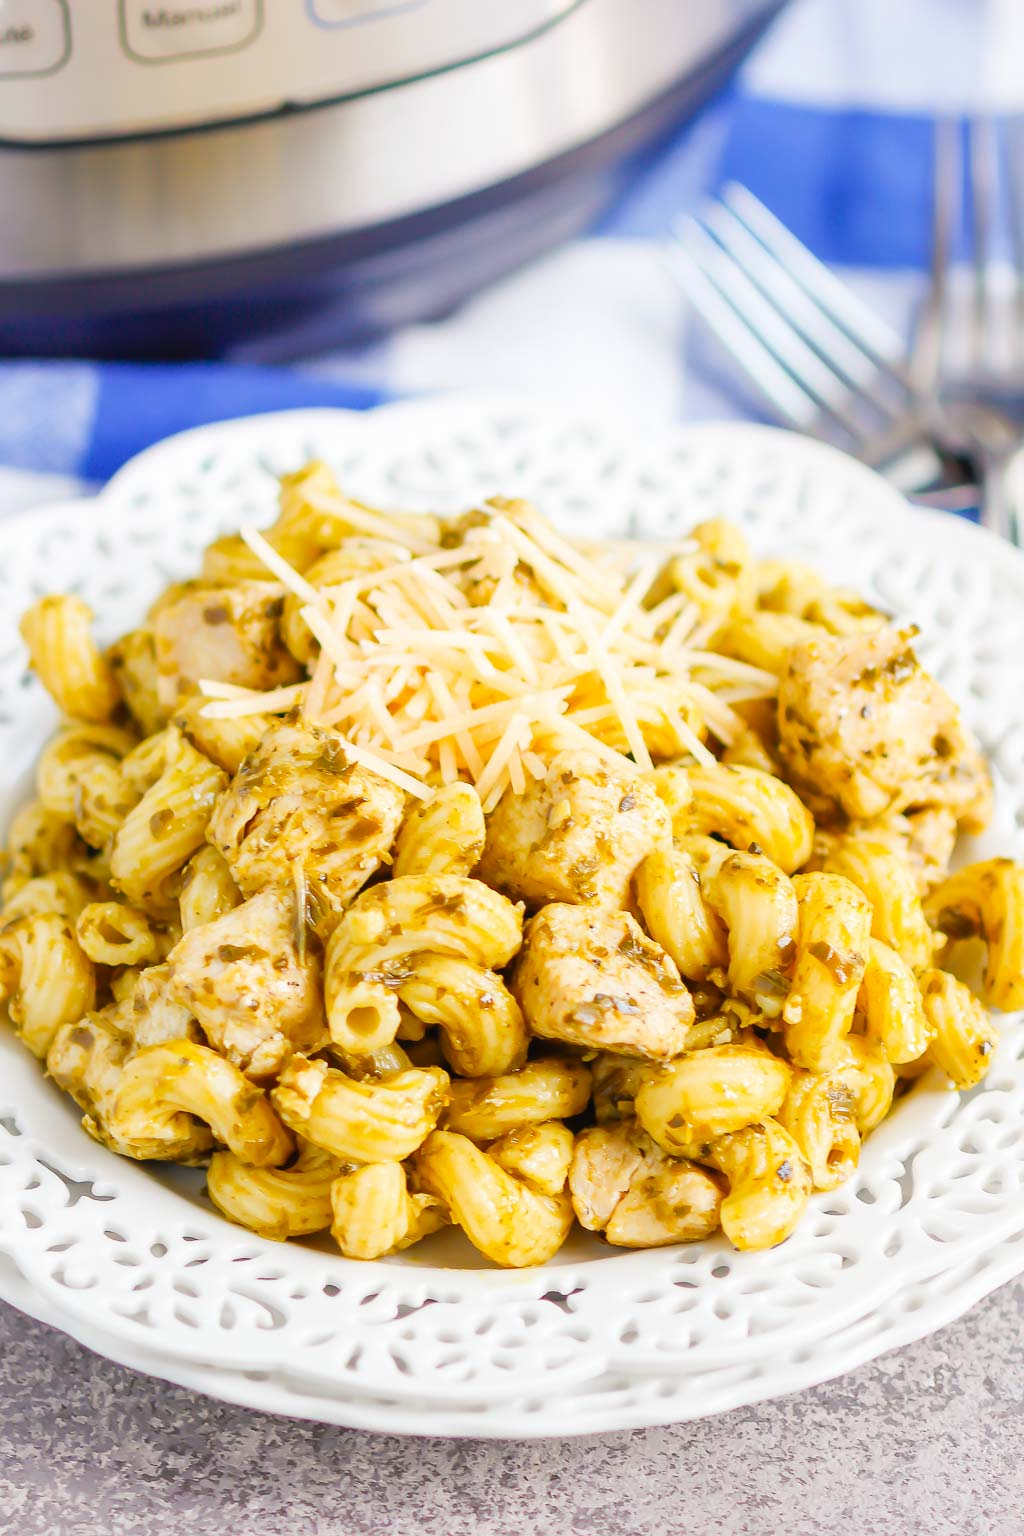 Instant Pot Pesto Chicken with Pasta is a delicious weeknight meal that combines the bright basil and garlic flavor of pesto with easy to cook chicken and pasta. The entire meal made in your Instant Pot in a little more than 30 minutes makes this a perfect weeknight recipe! #chicken #pestochicken #pesto #pestochickenpasta #pasta #instantpot #instantpotchicken #instantpotpasta #weeknightdinner #easydinner #dinner